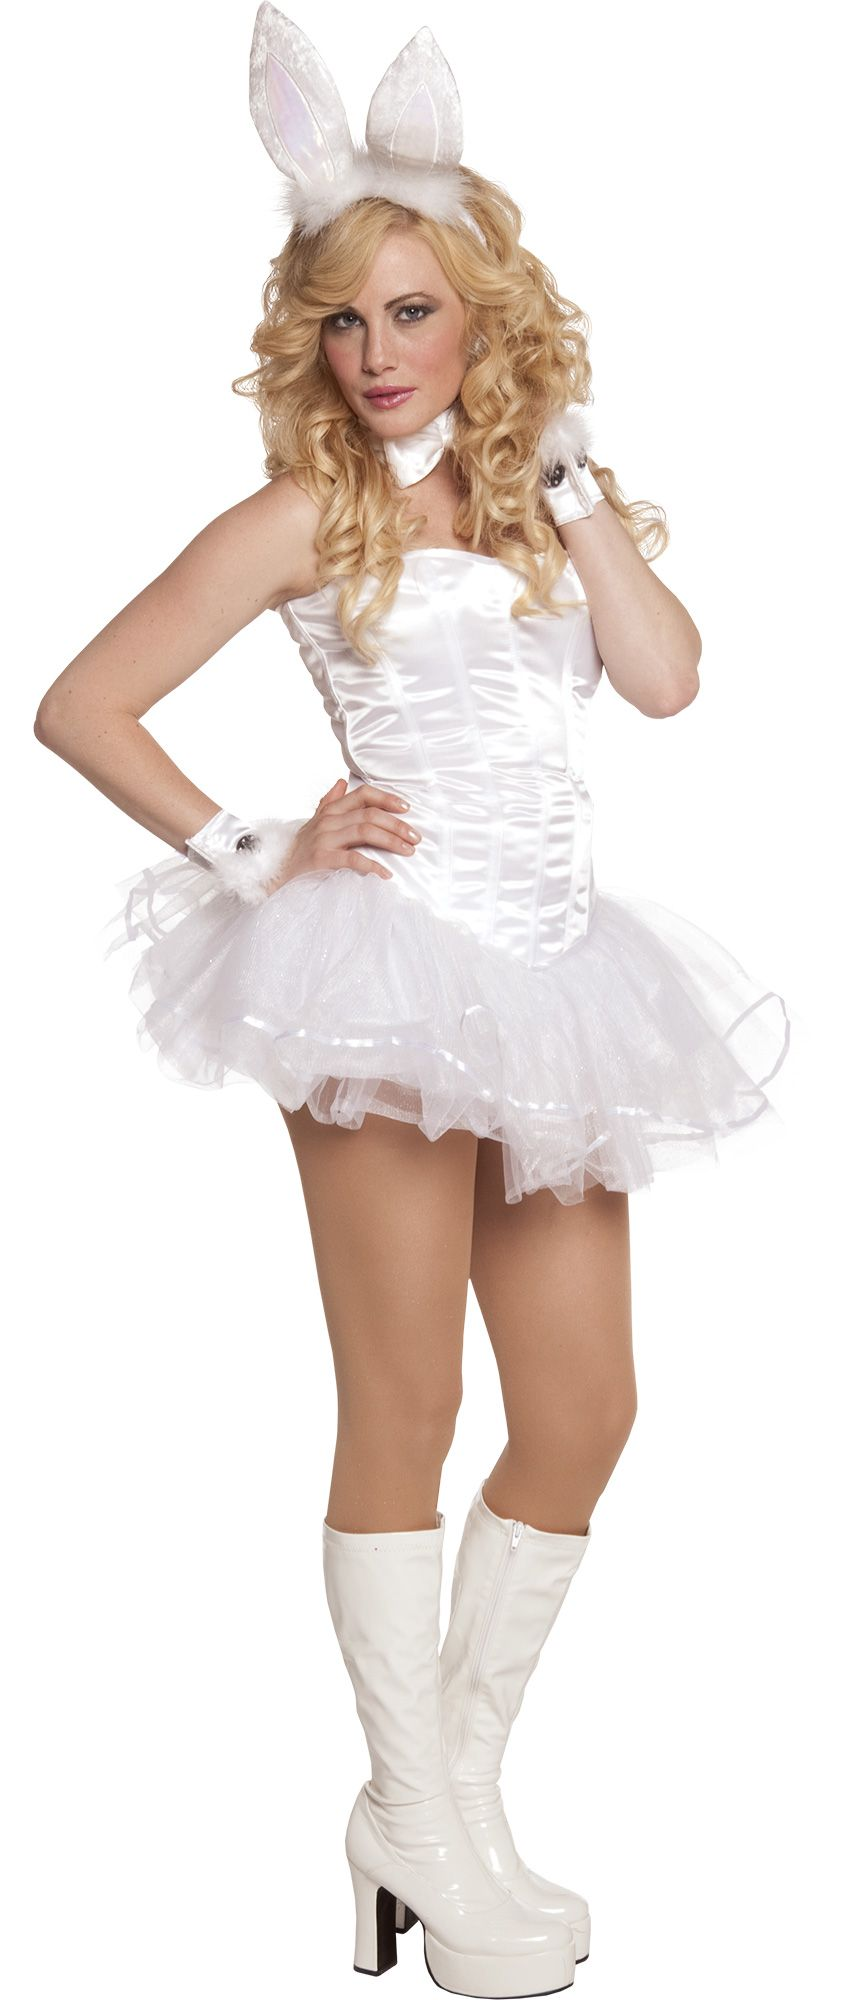 Make Your Costume - Womens Bunny